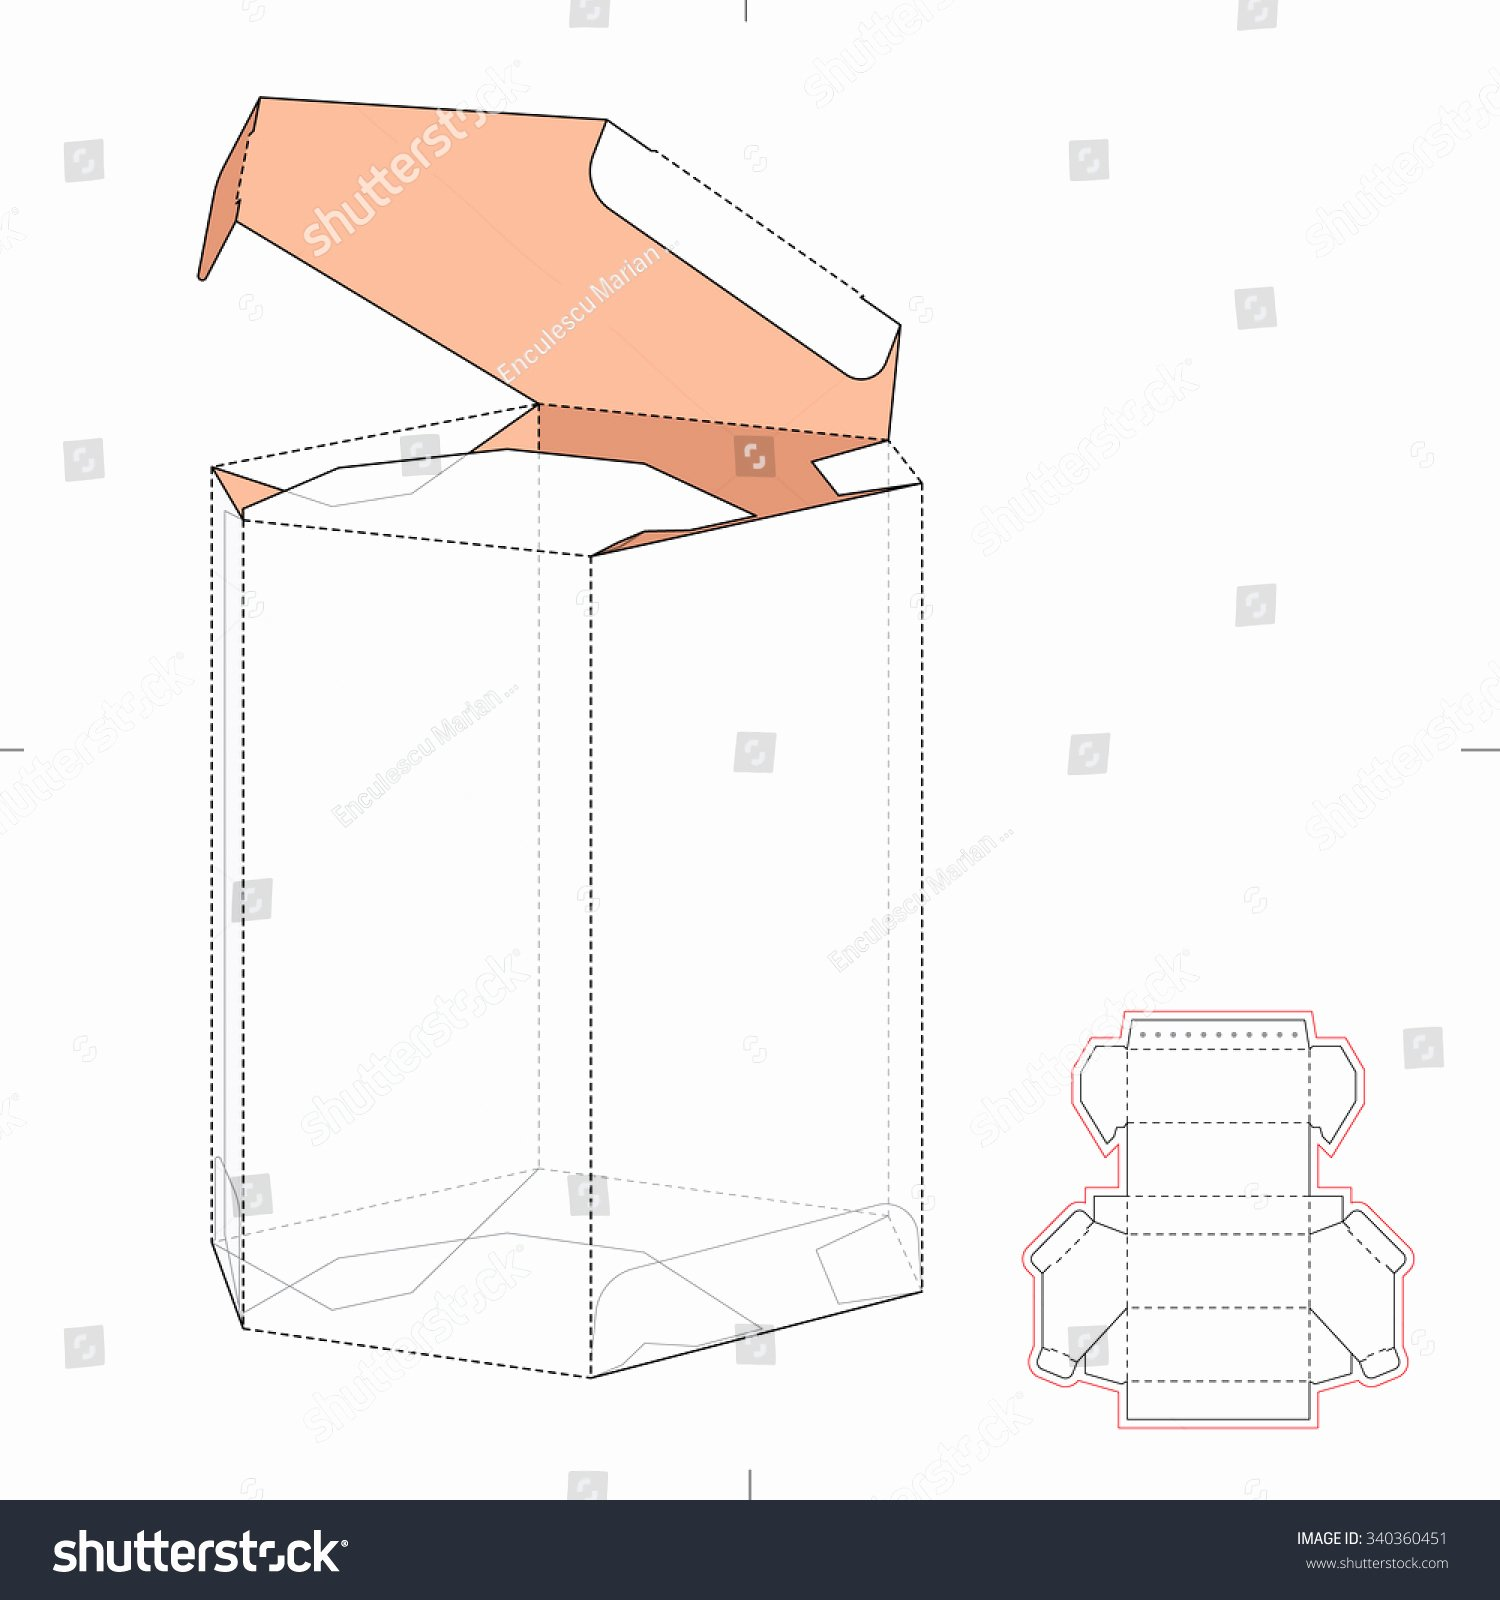 Die Cut Box Template Awesome Diamond Shaped Box Die Cut Template Stock Vector